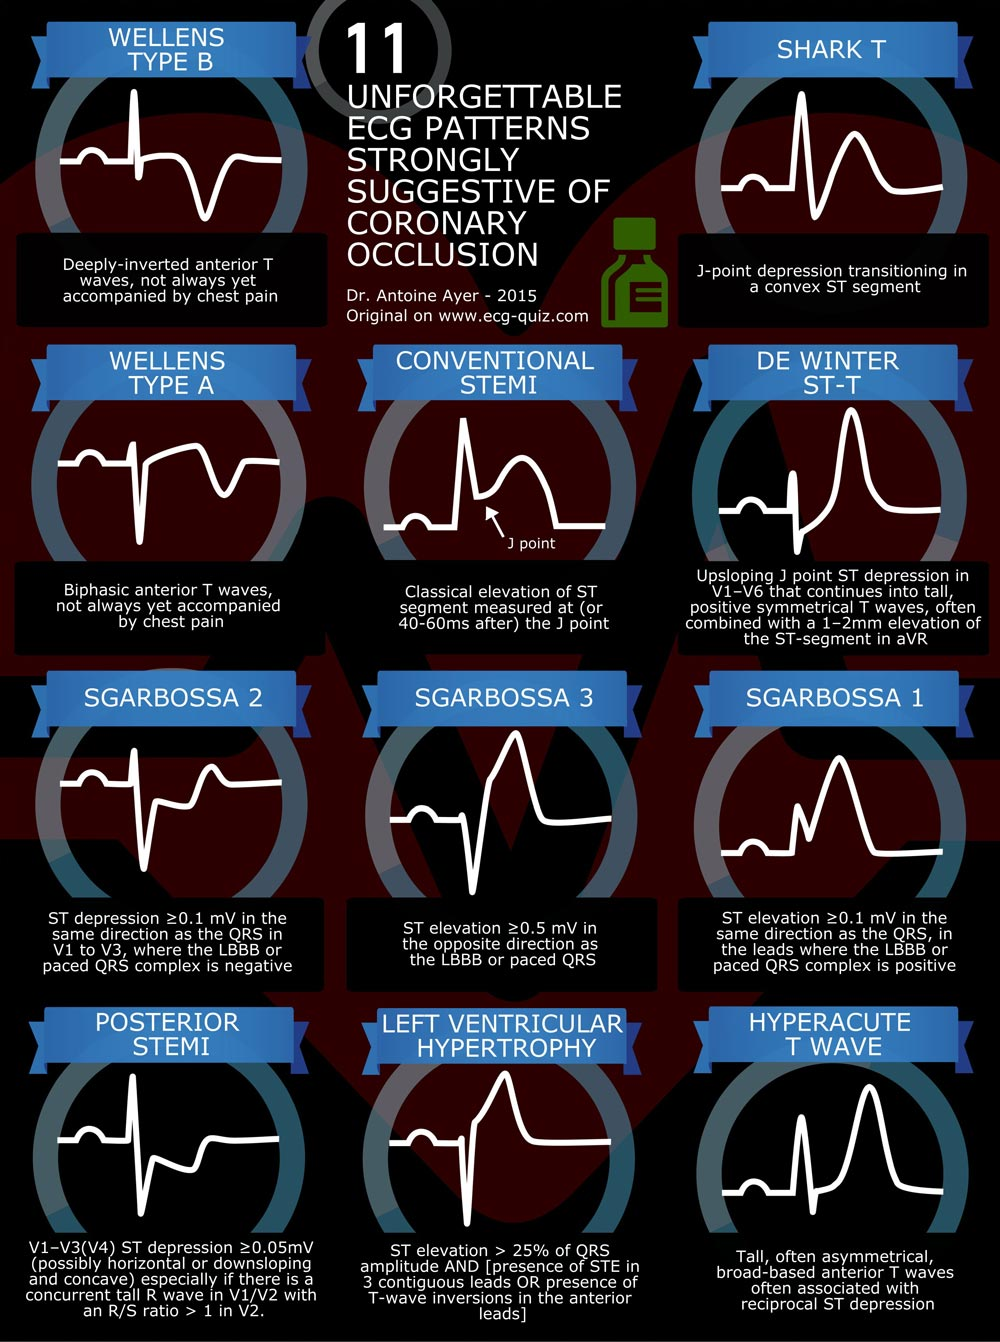 STEMI patterns